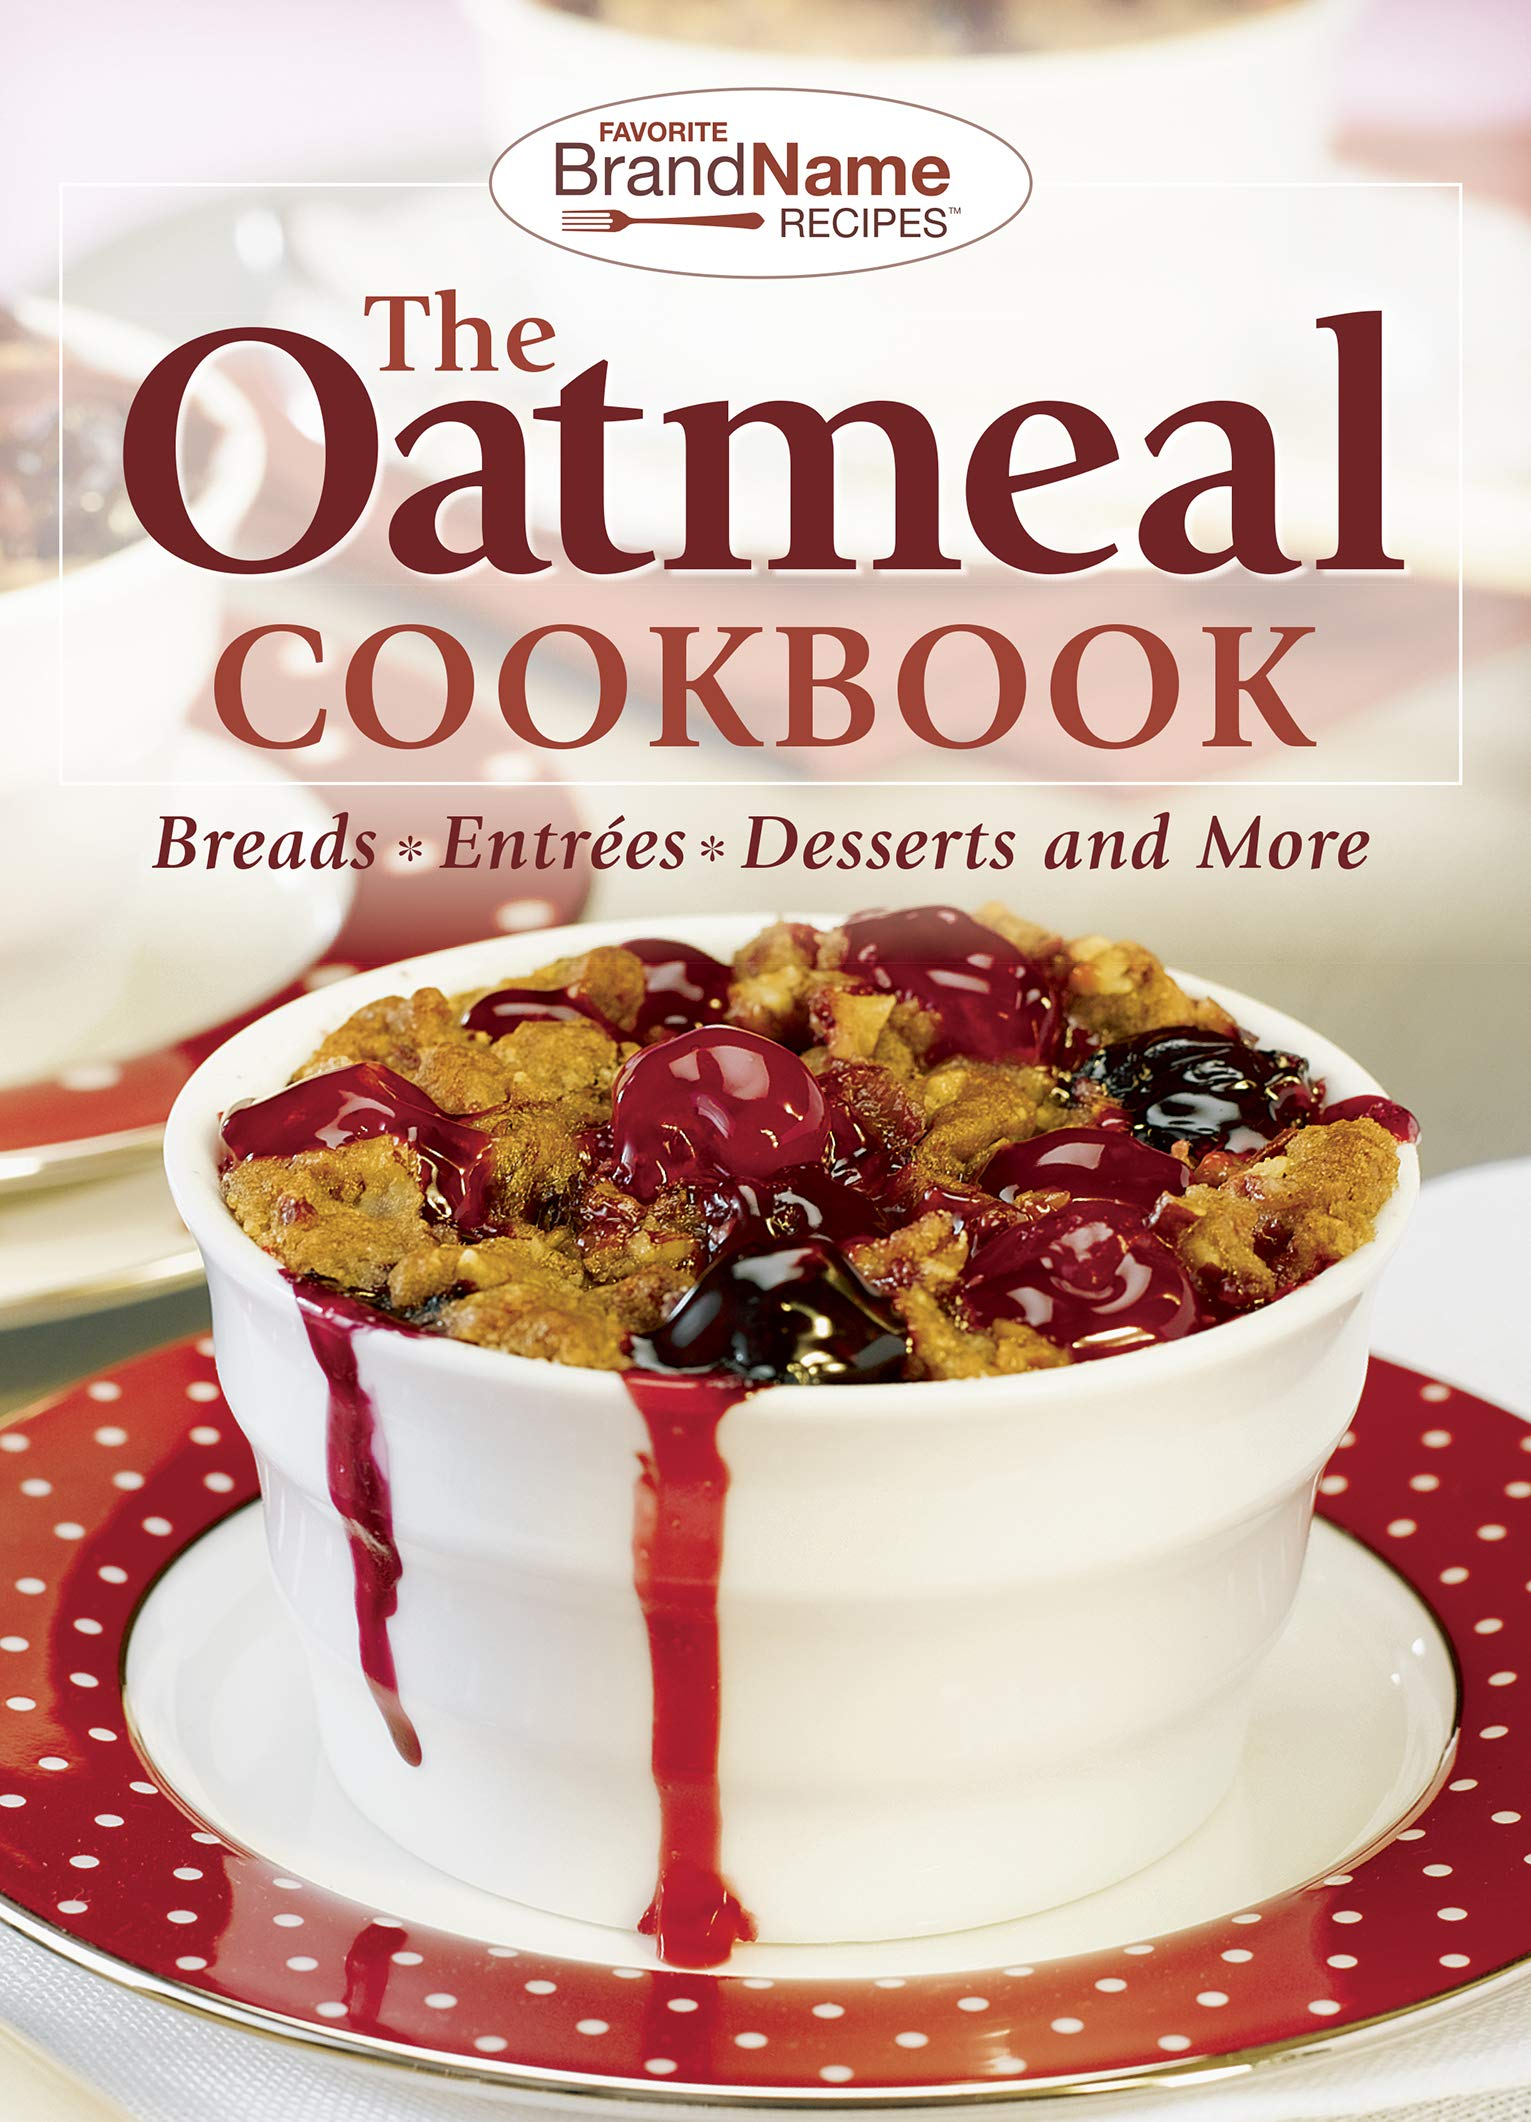 Image OfThe Oatmeal Cookbook